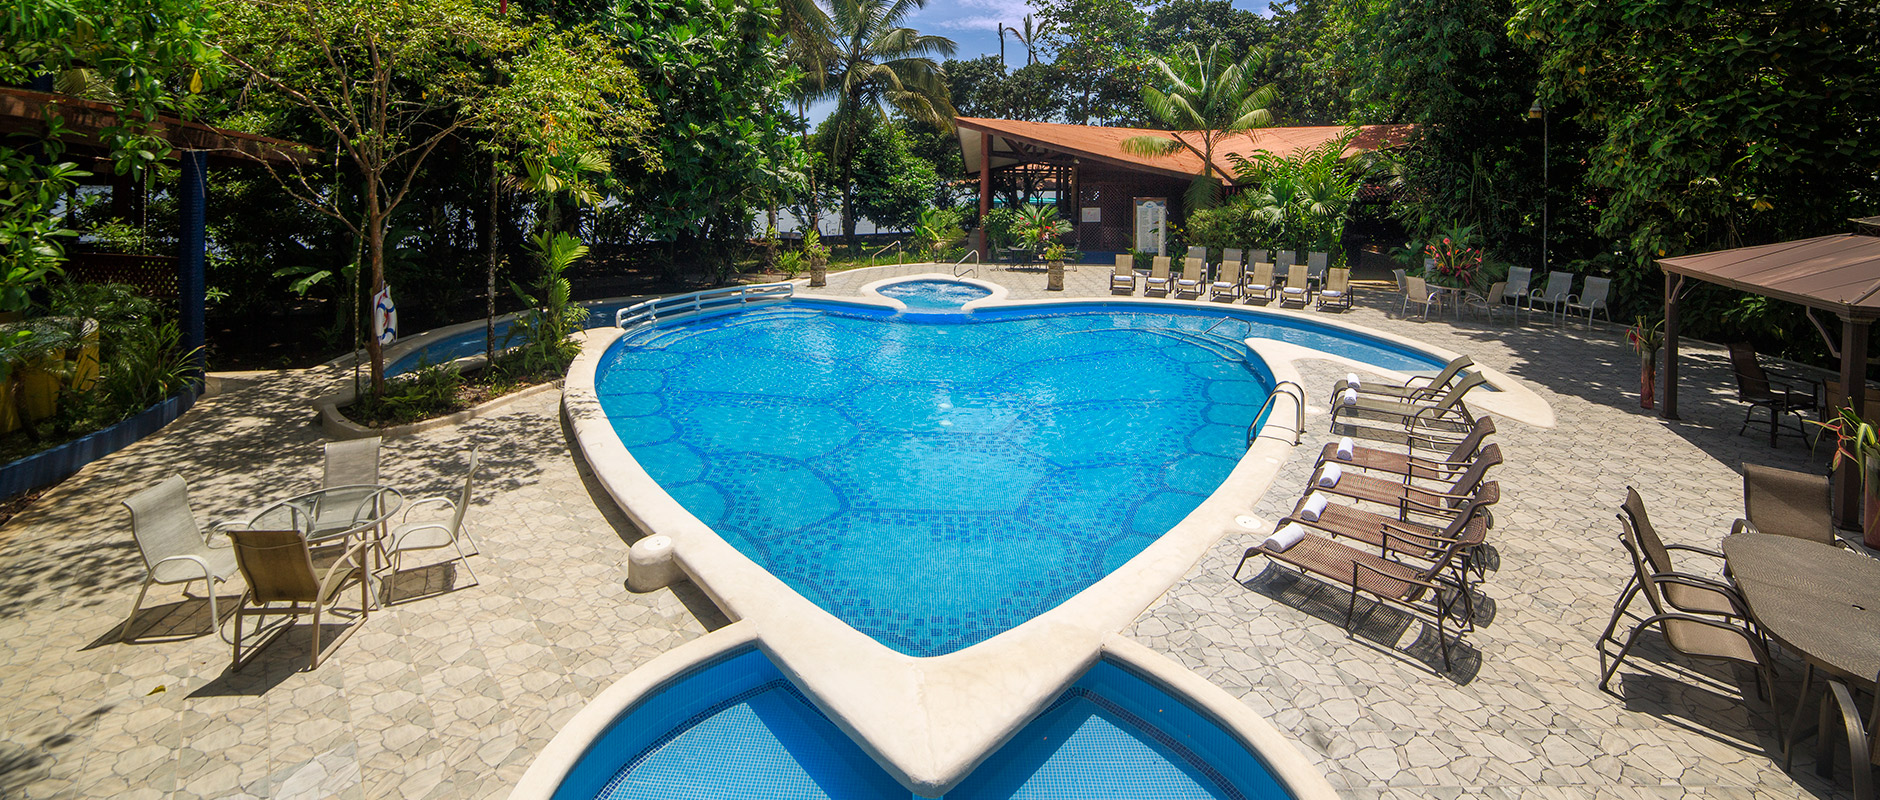 Welcome to Aninga Hotel & Spa in Tortuguero, Costa Rica